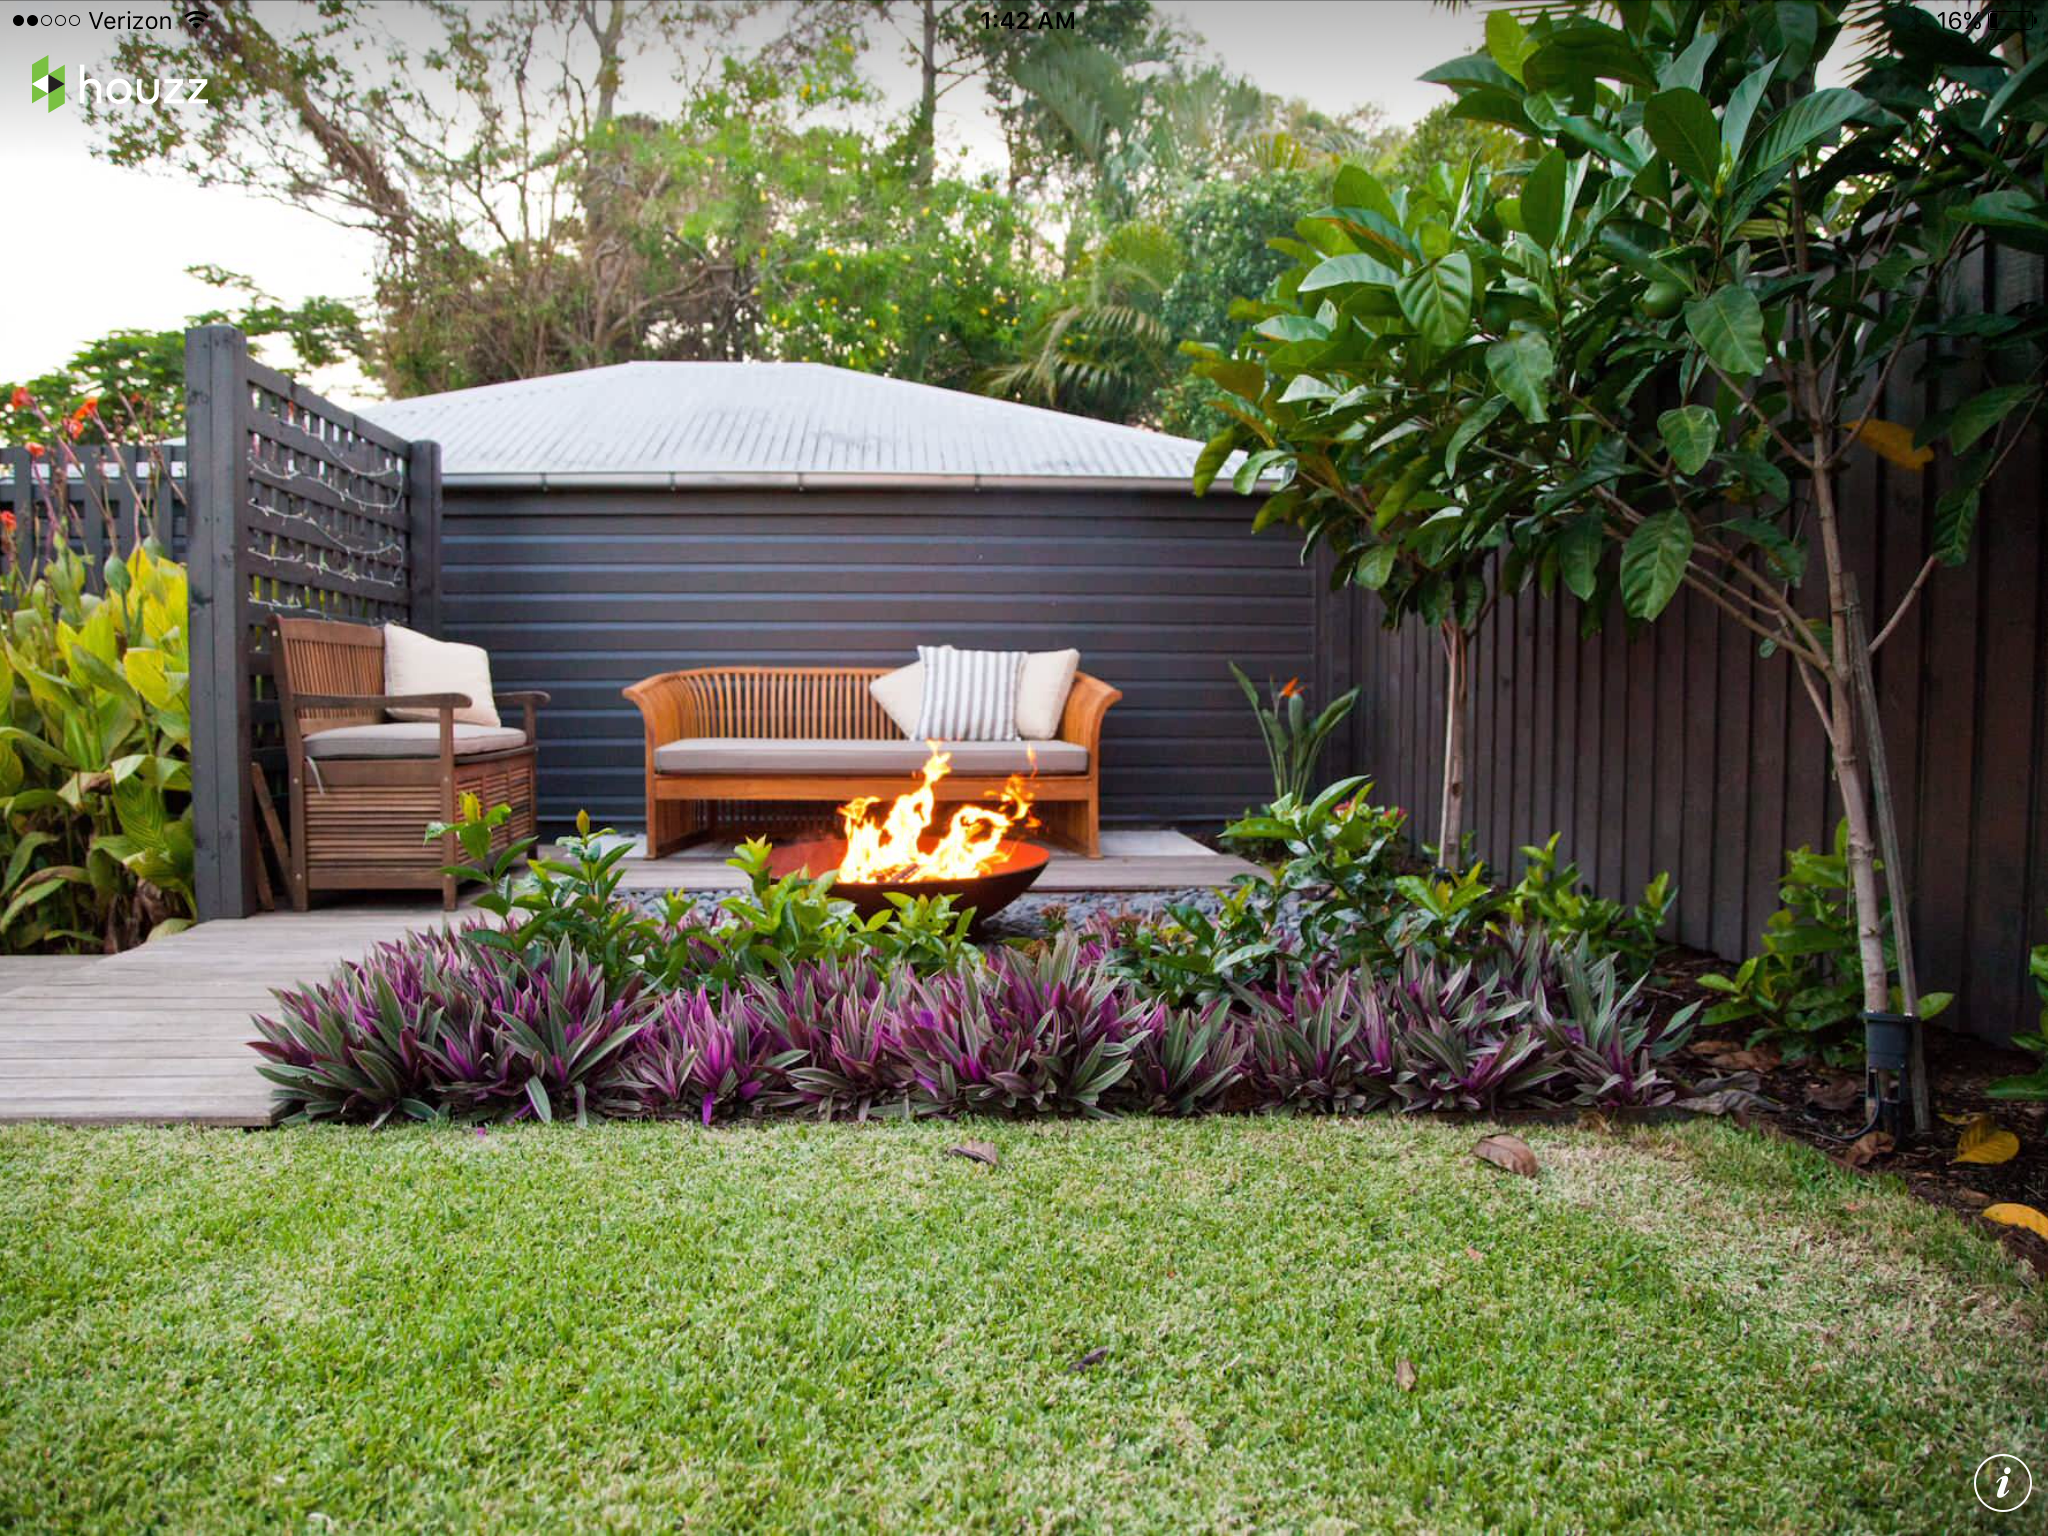 Pin By Pam Mclean On Our House Yard Garden Small Backyard Landscaping Tropical Patio Small Garden Landscape Design